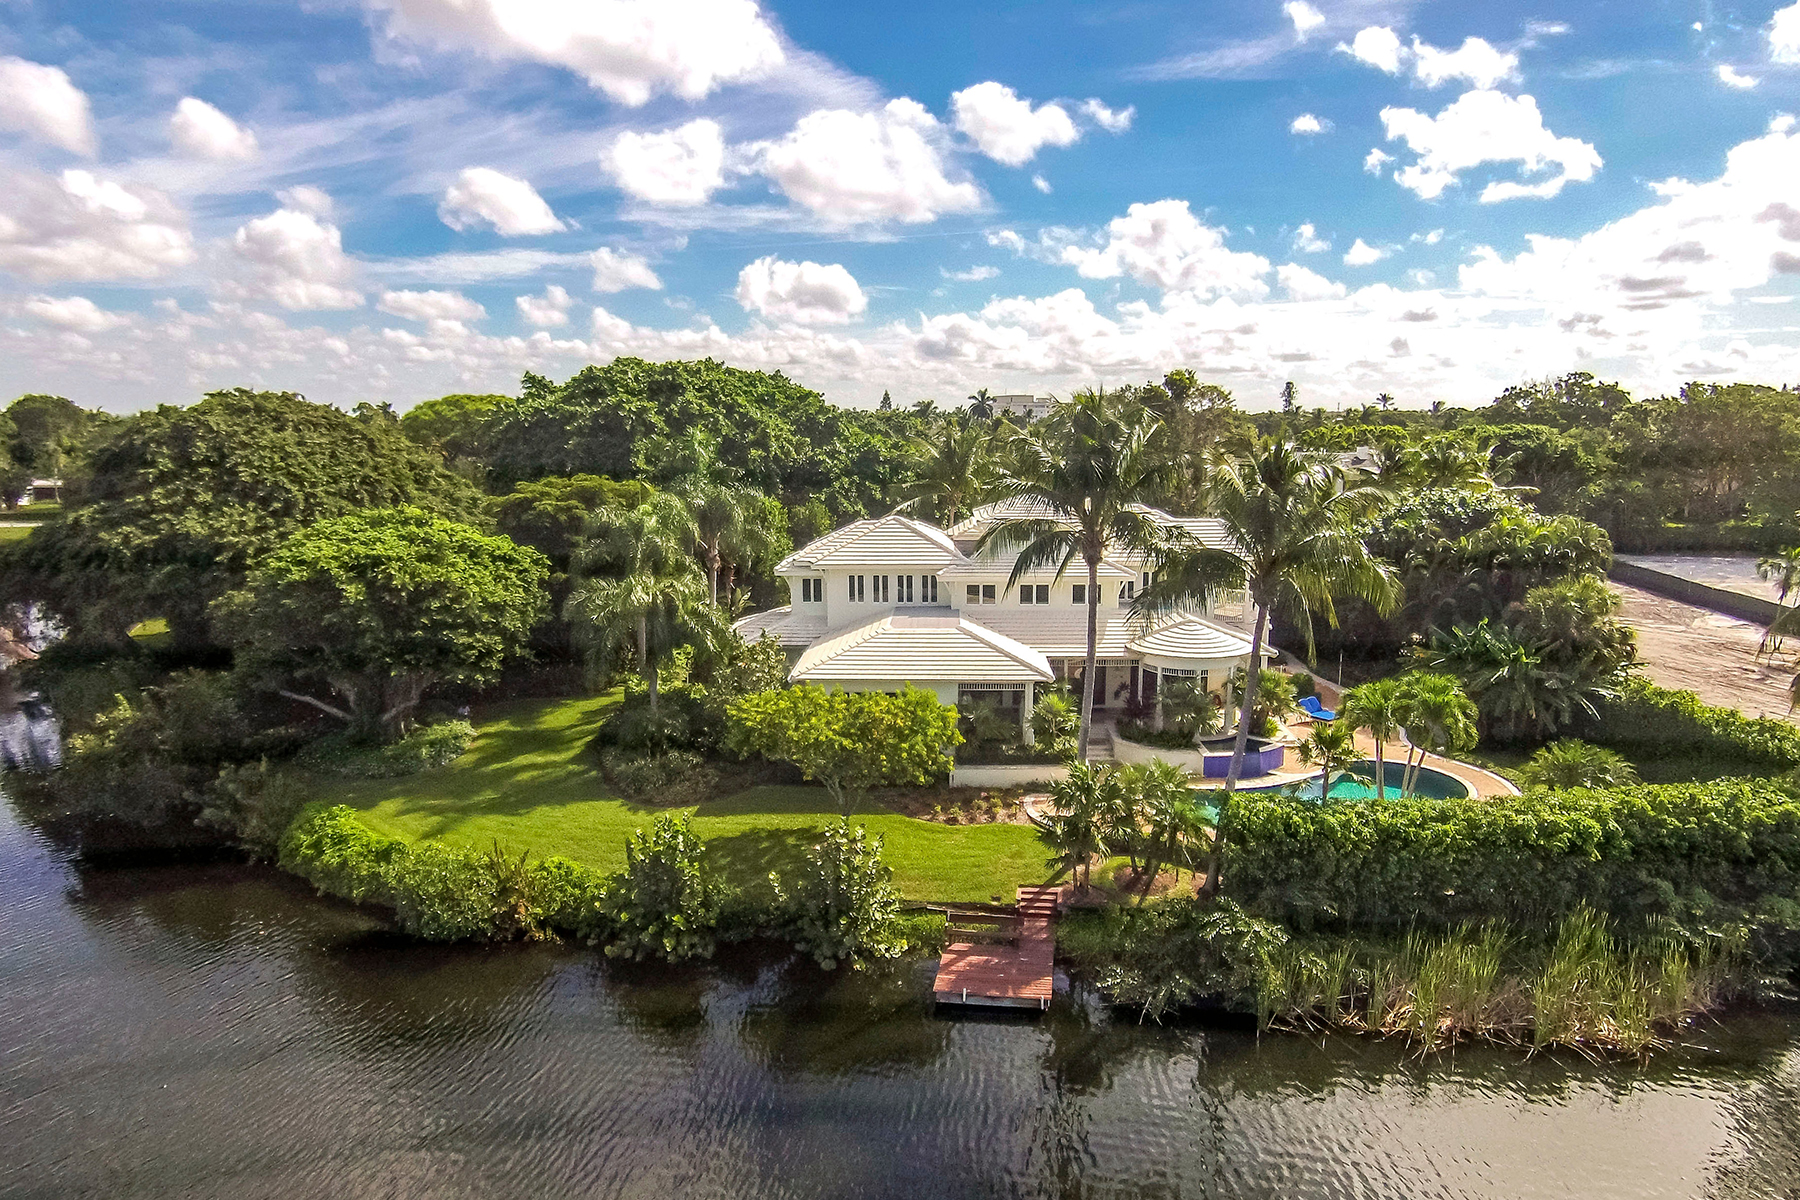 Single Family Home for Sale at OLDE NAPLES 575 3rd St N, Naples, Florida 34102 United States